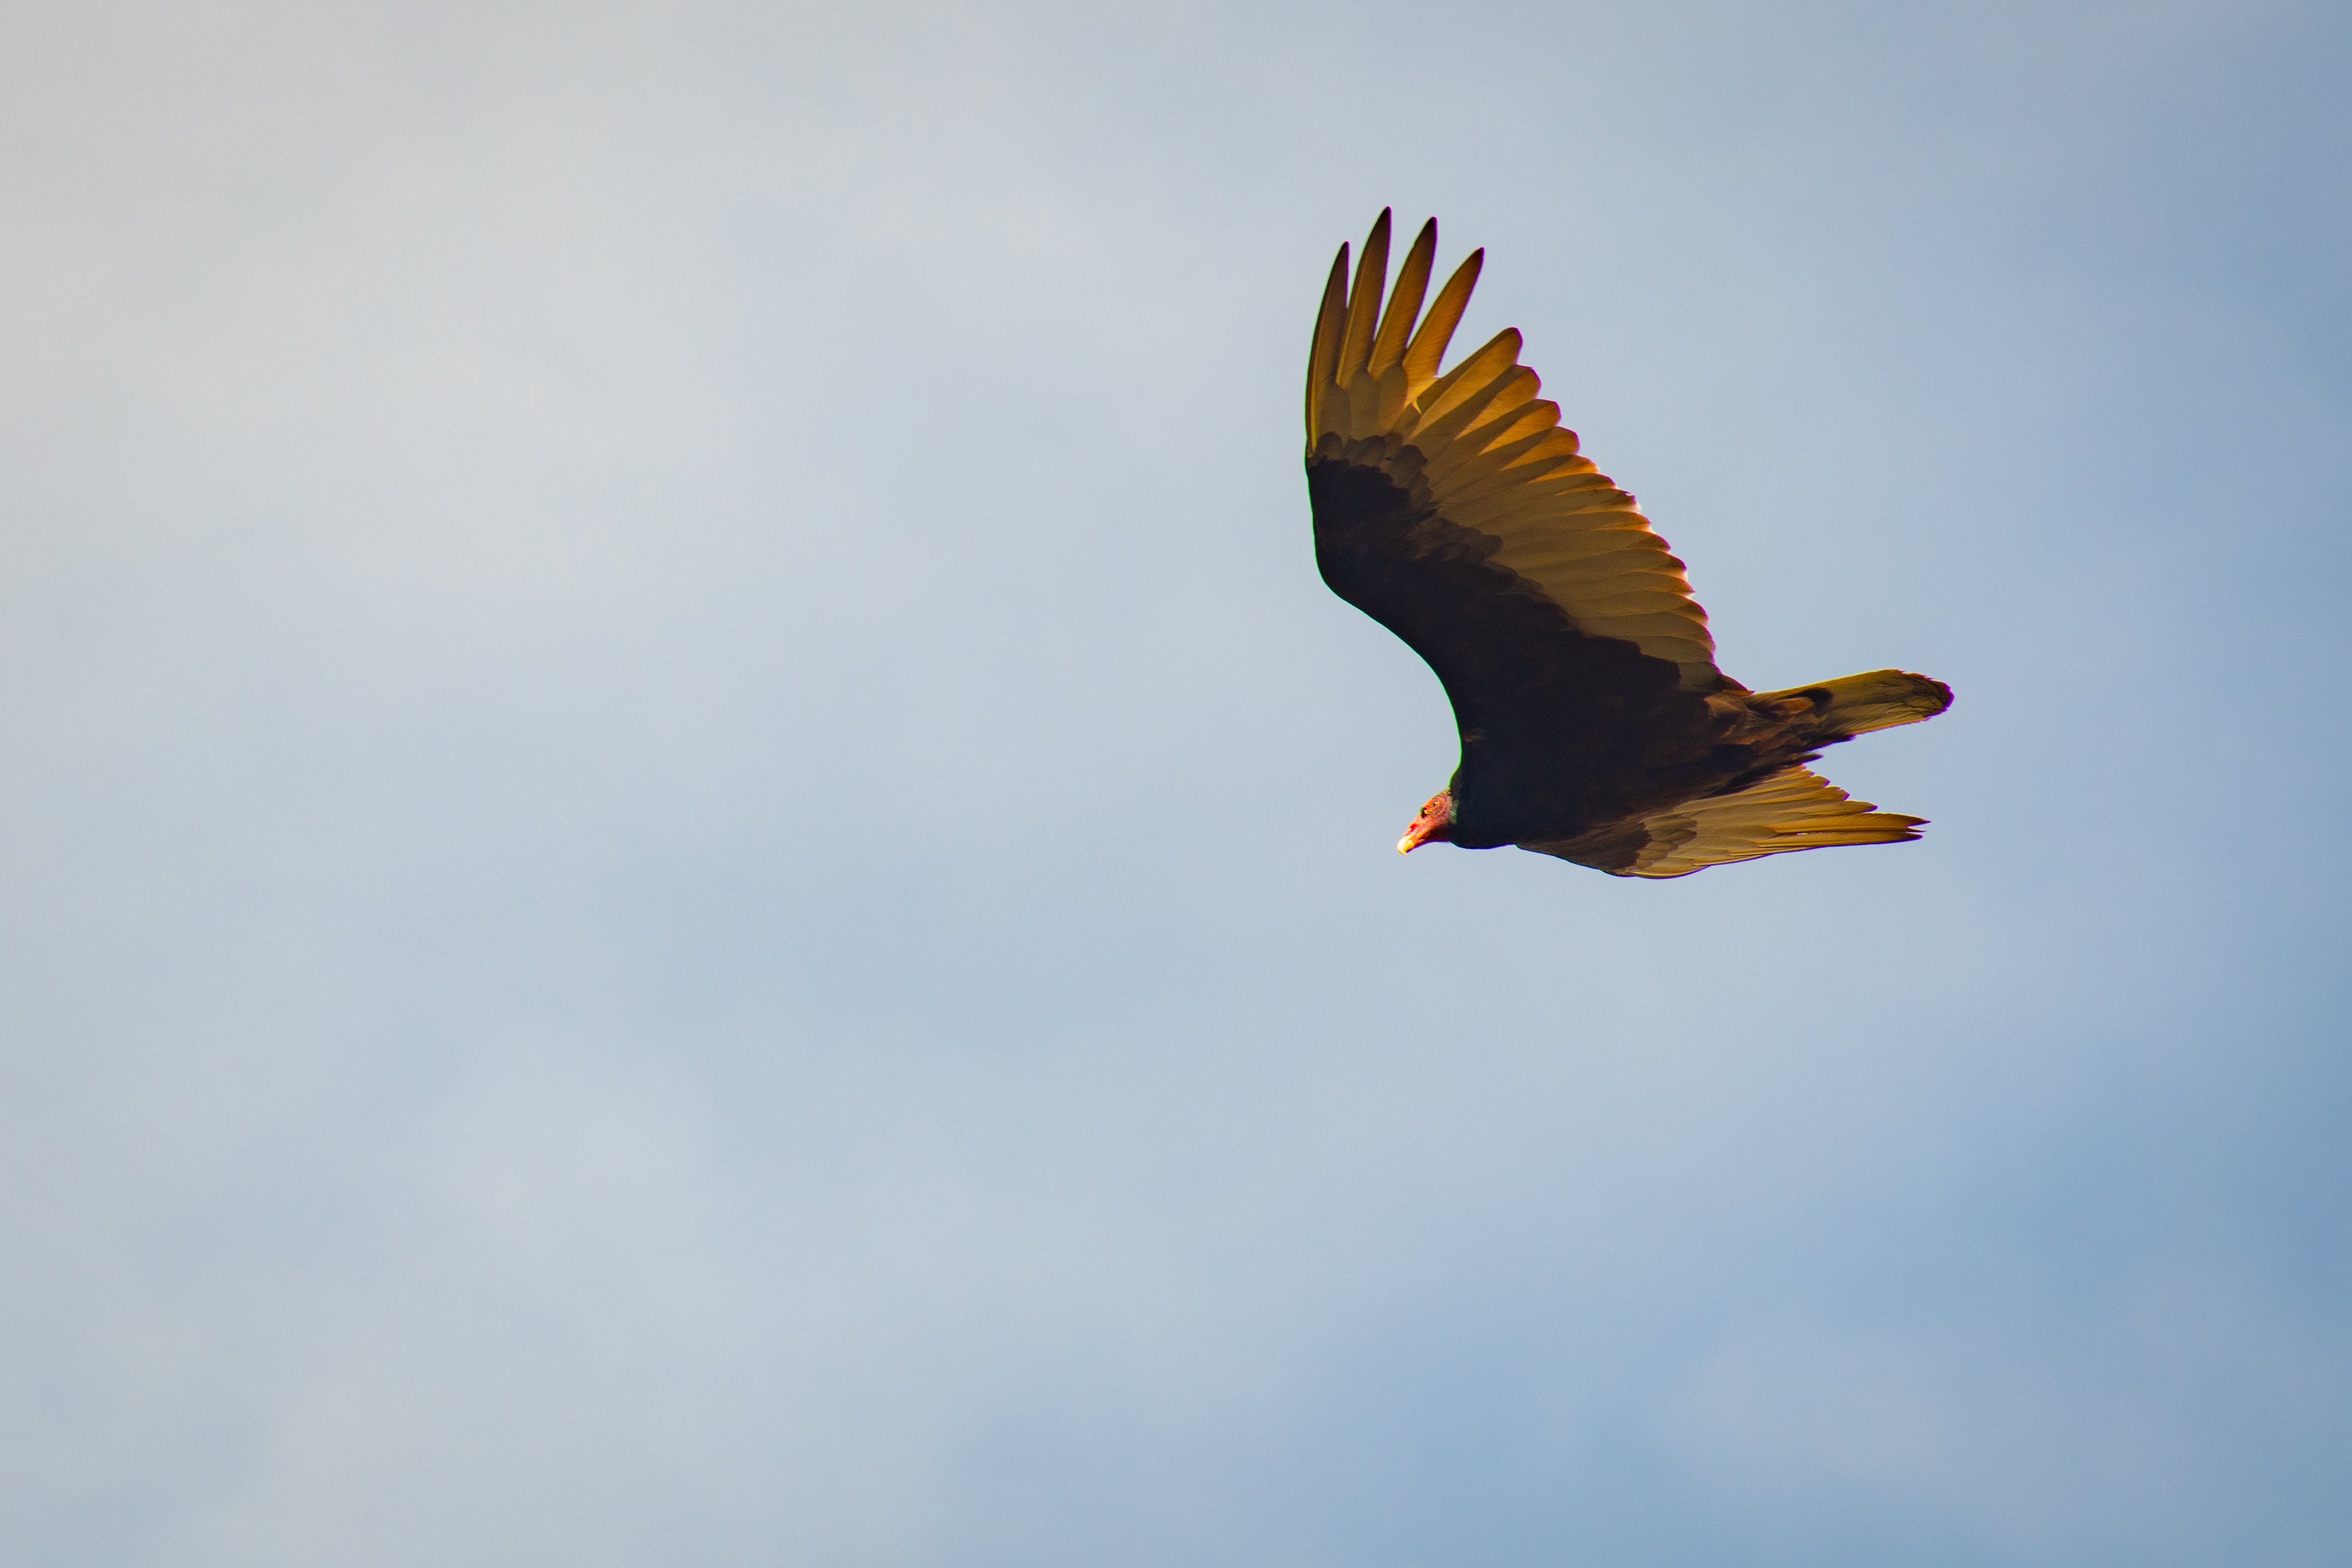 Brown and Yellow Bird Flying in the Sky